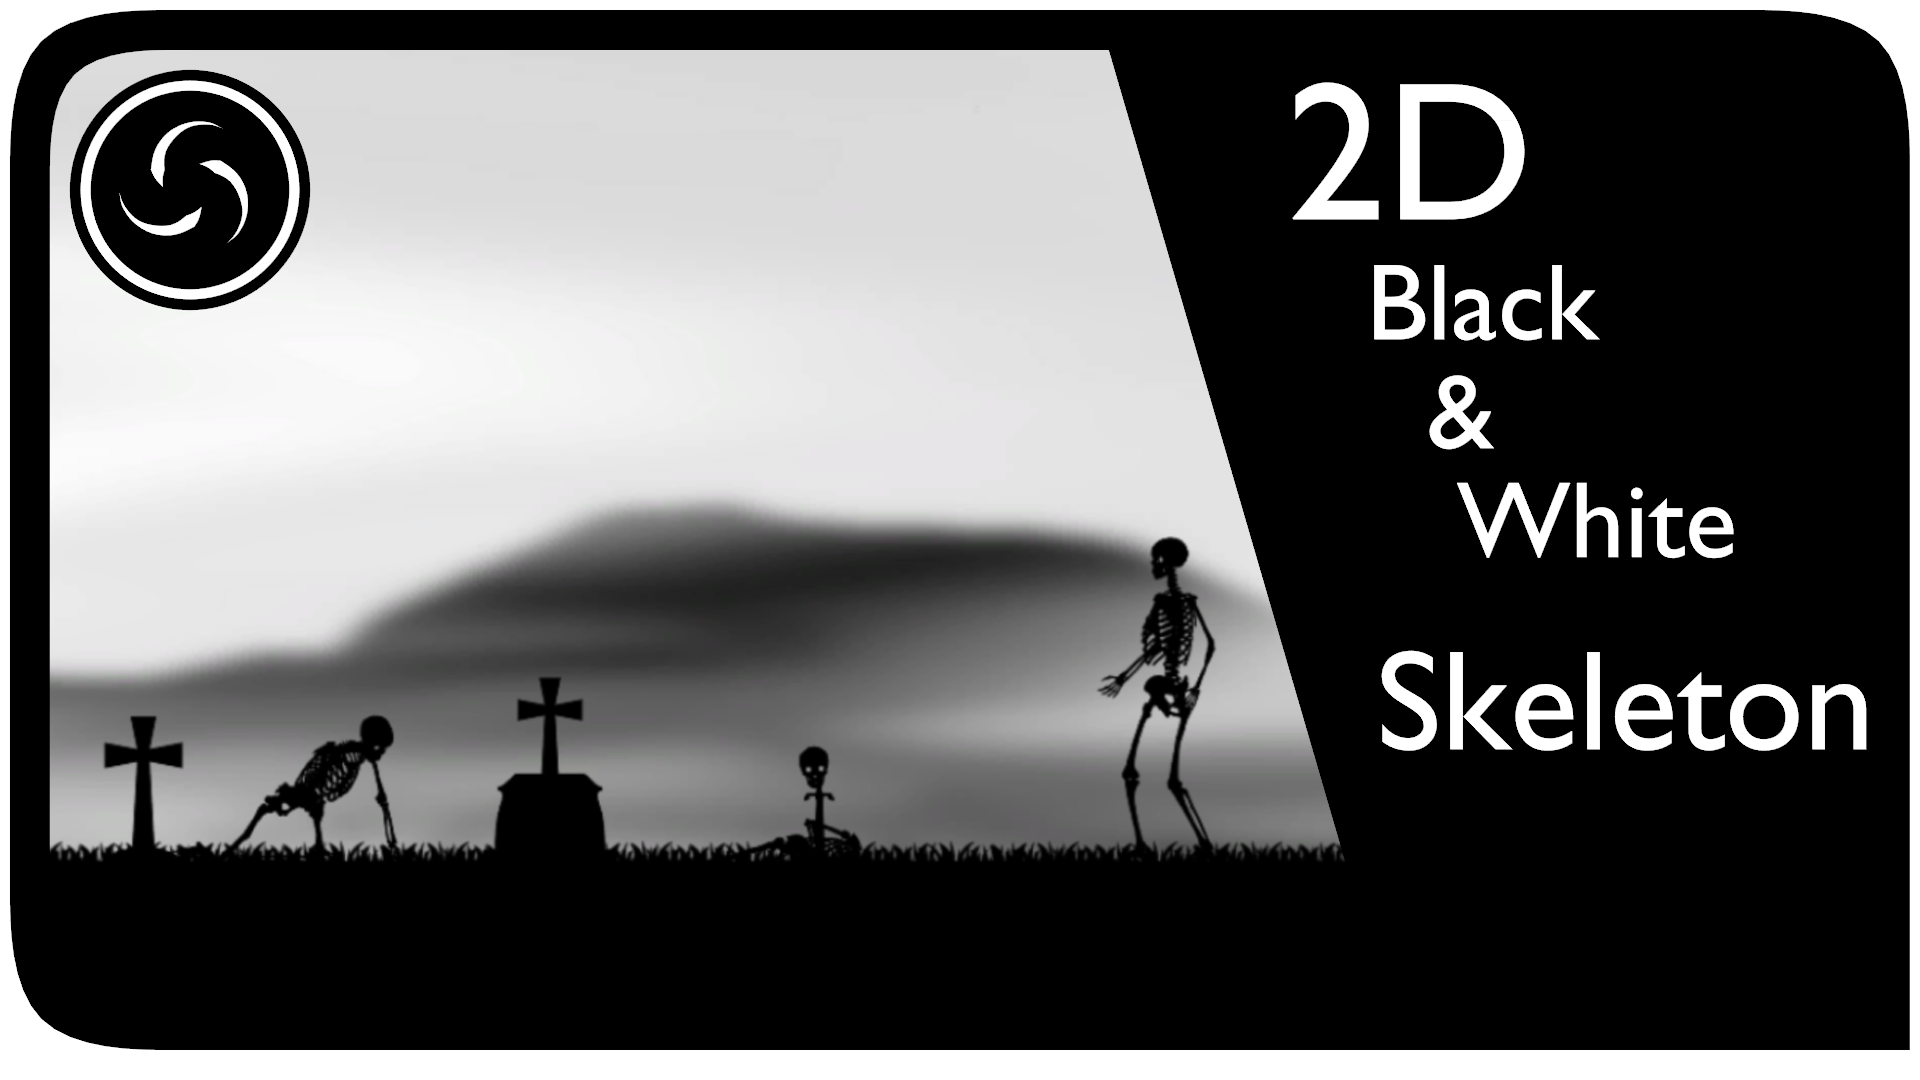 2D Black & White Skeleton